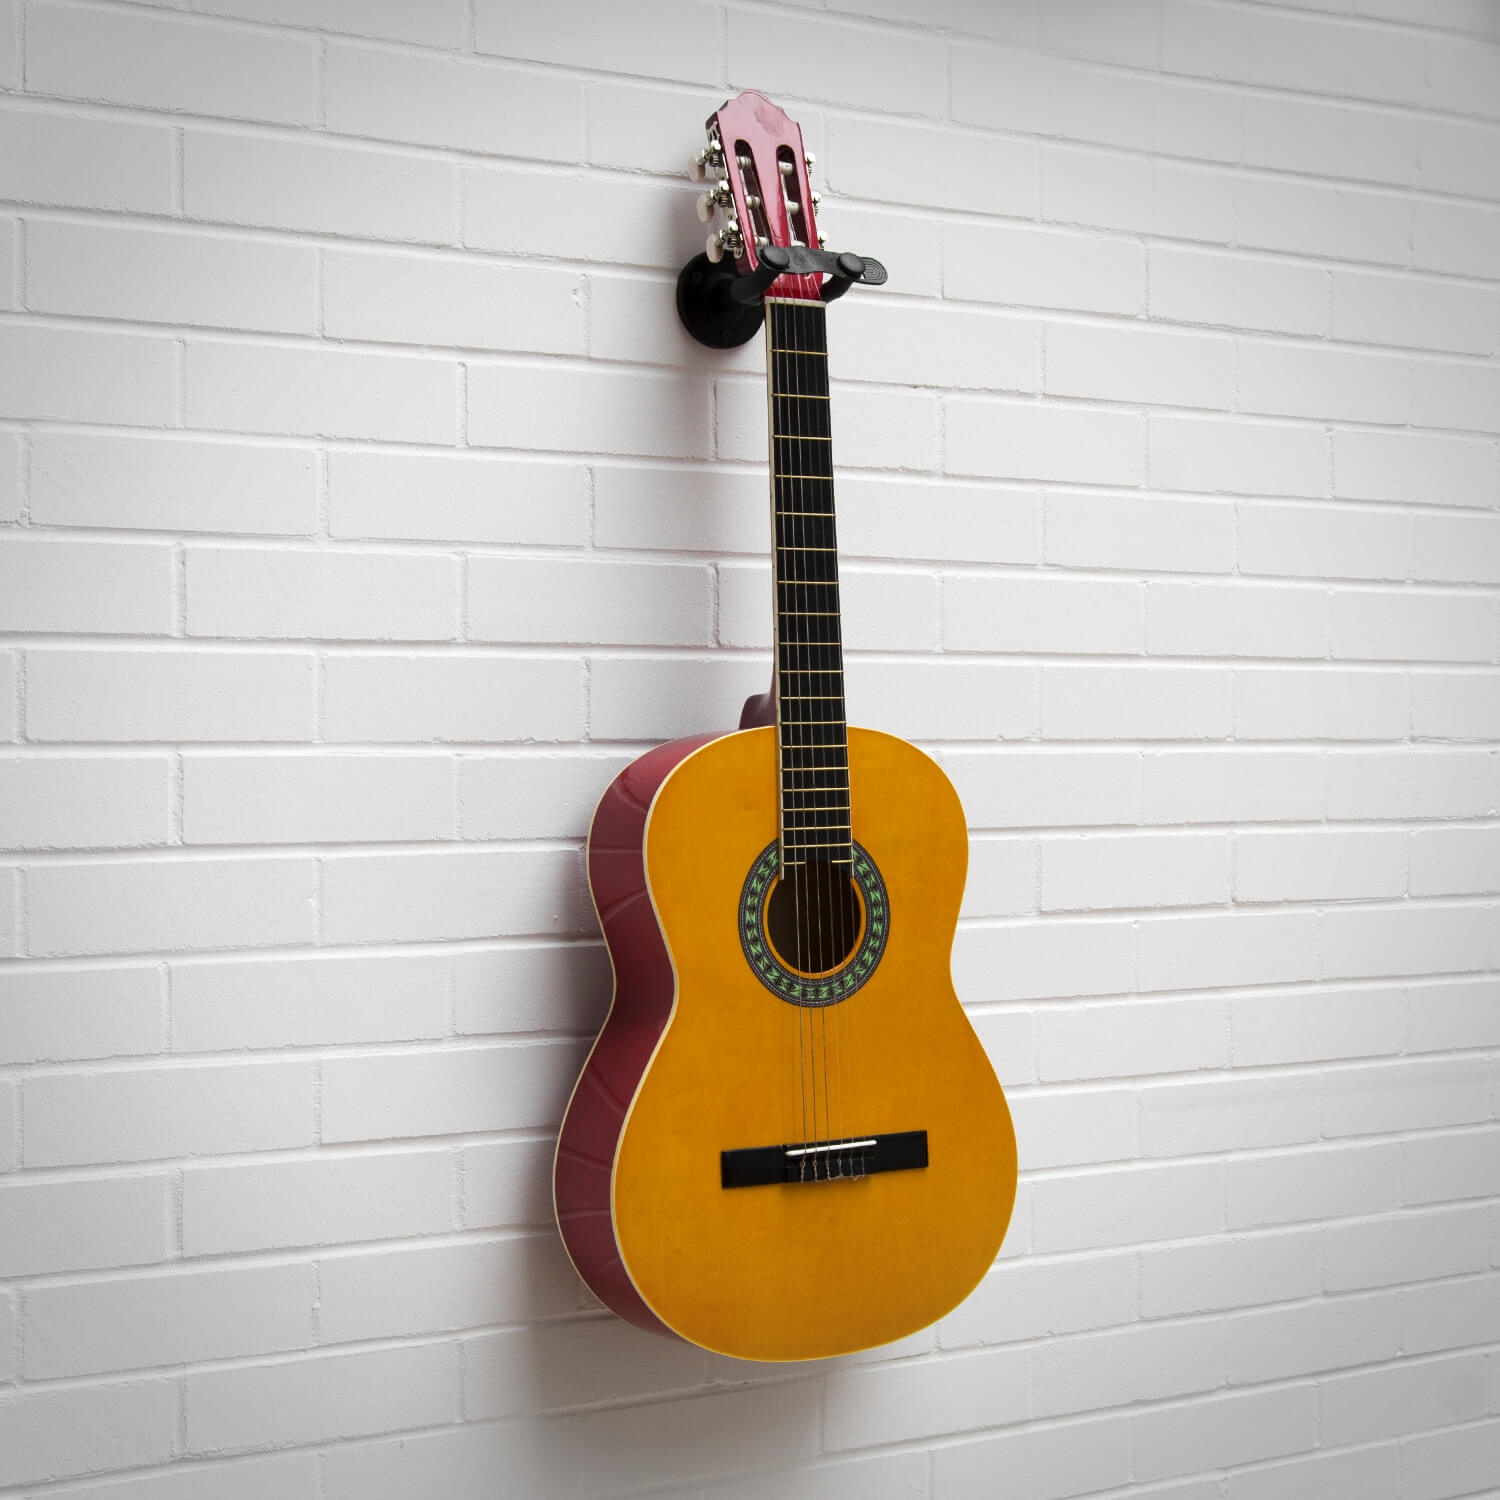 Tiger Guitar Wall Hanger - 3 Pack - Electric/Acoustic/Classical/Bass - 7